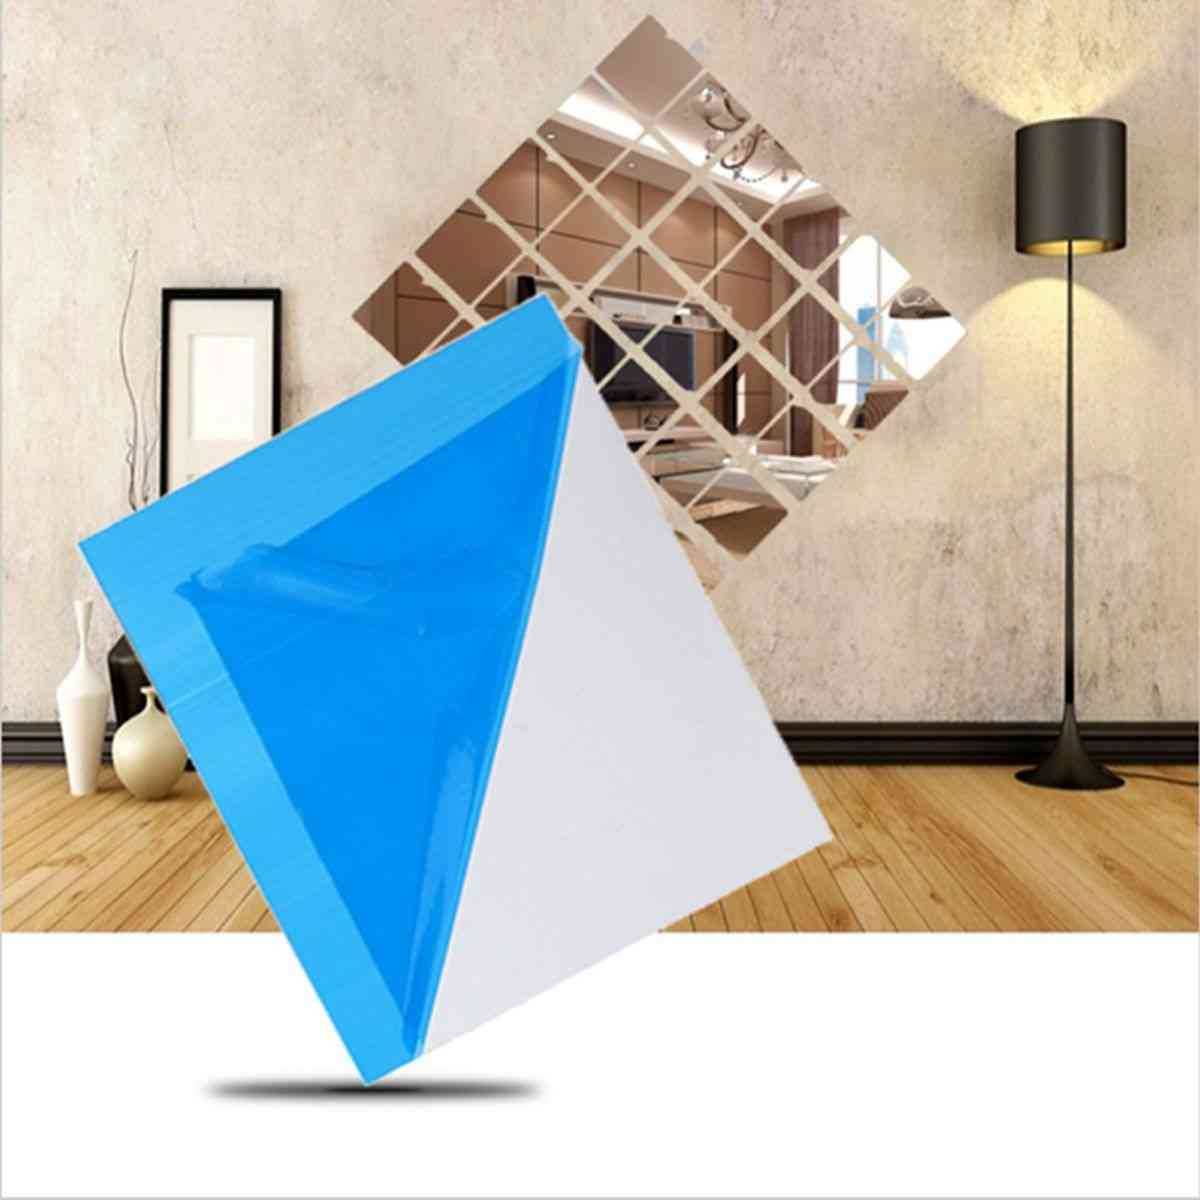 3d Acrylic Wallpaper & Stickers, Beautiful Fashion For Home Decor